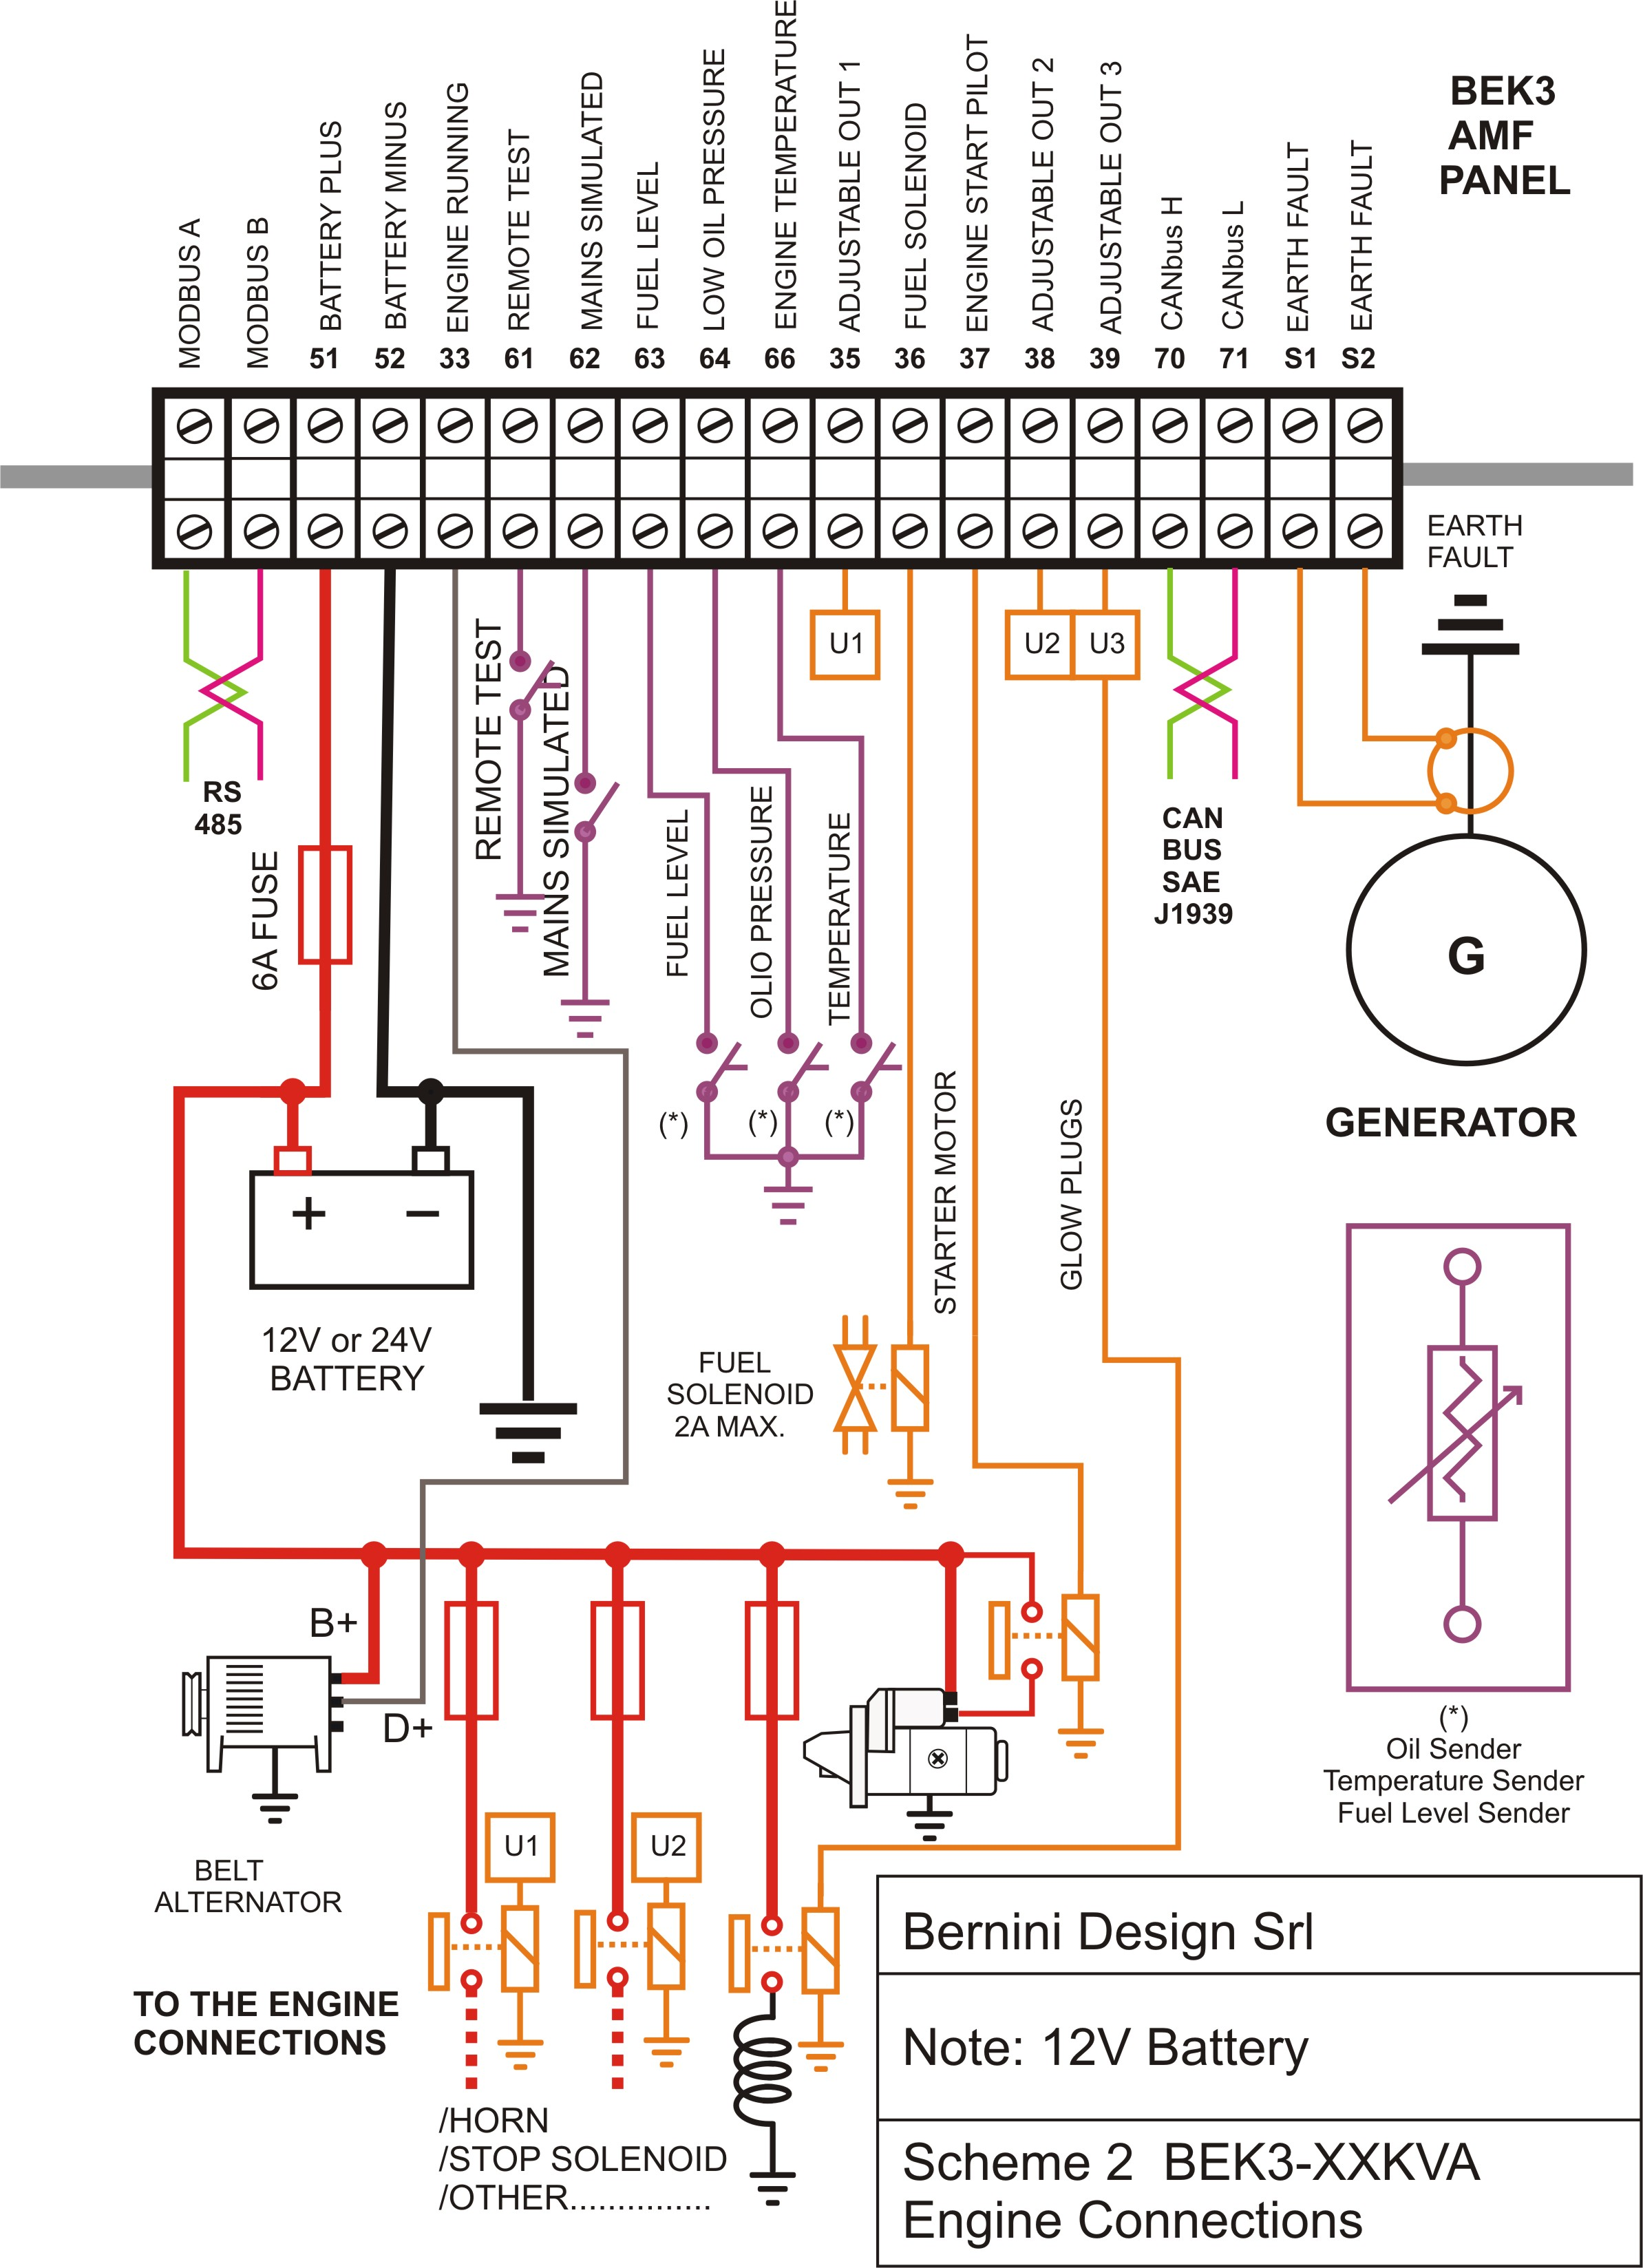 Refrigerator Wiring Diagram Pdf from bernini-design.com